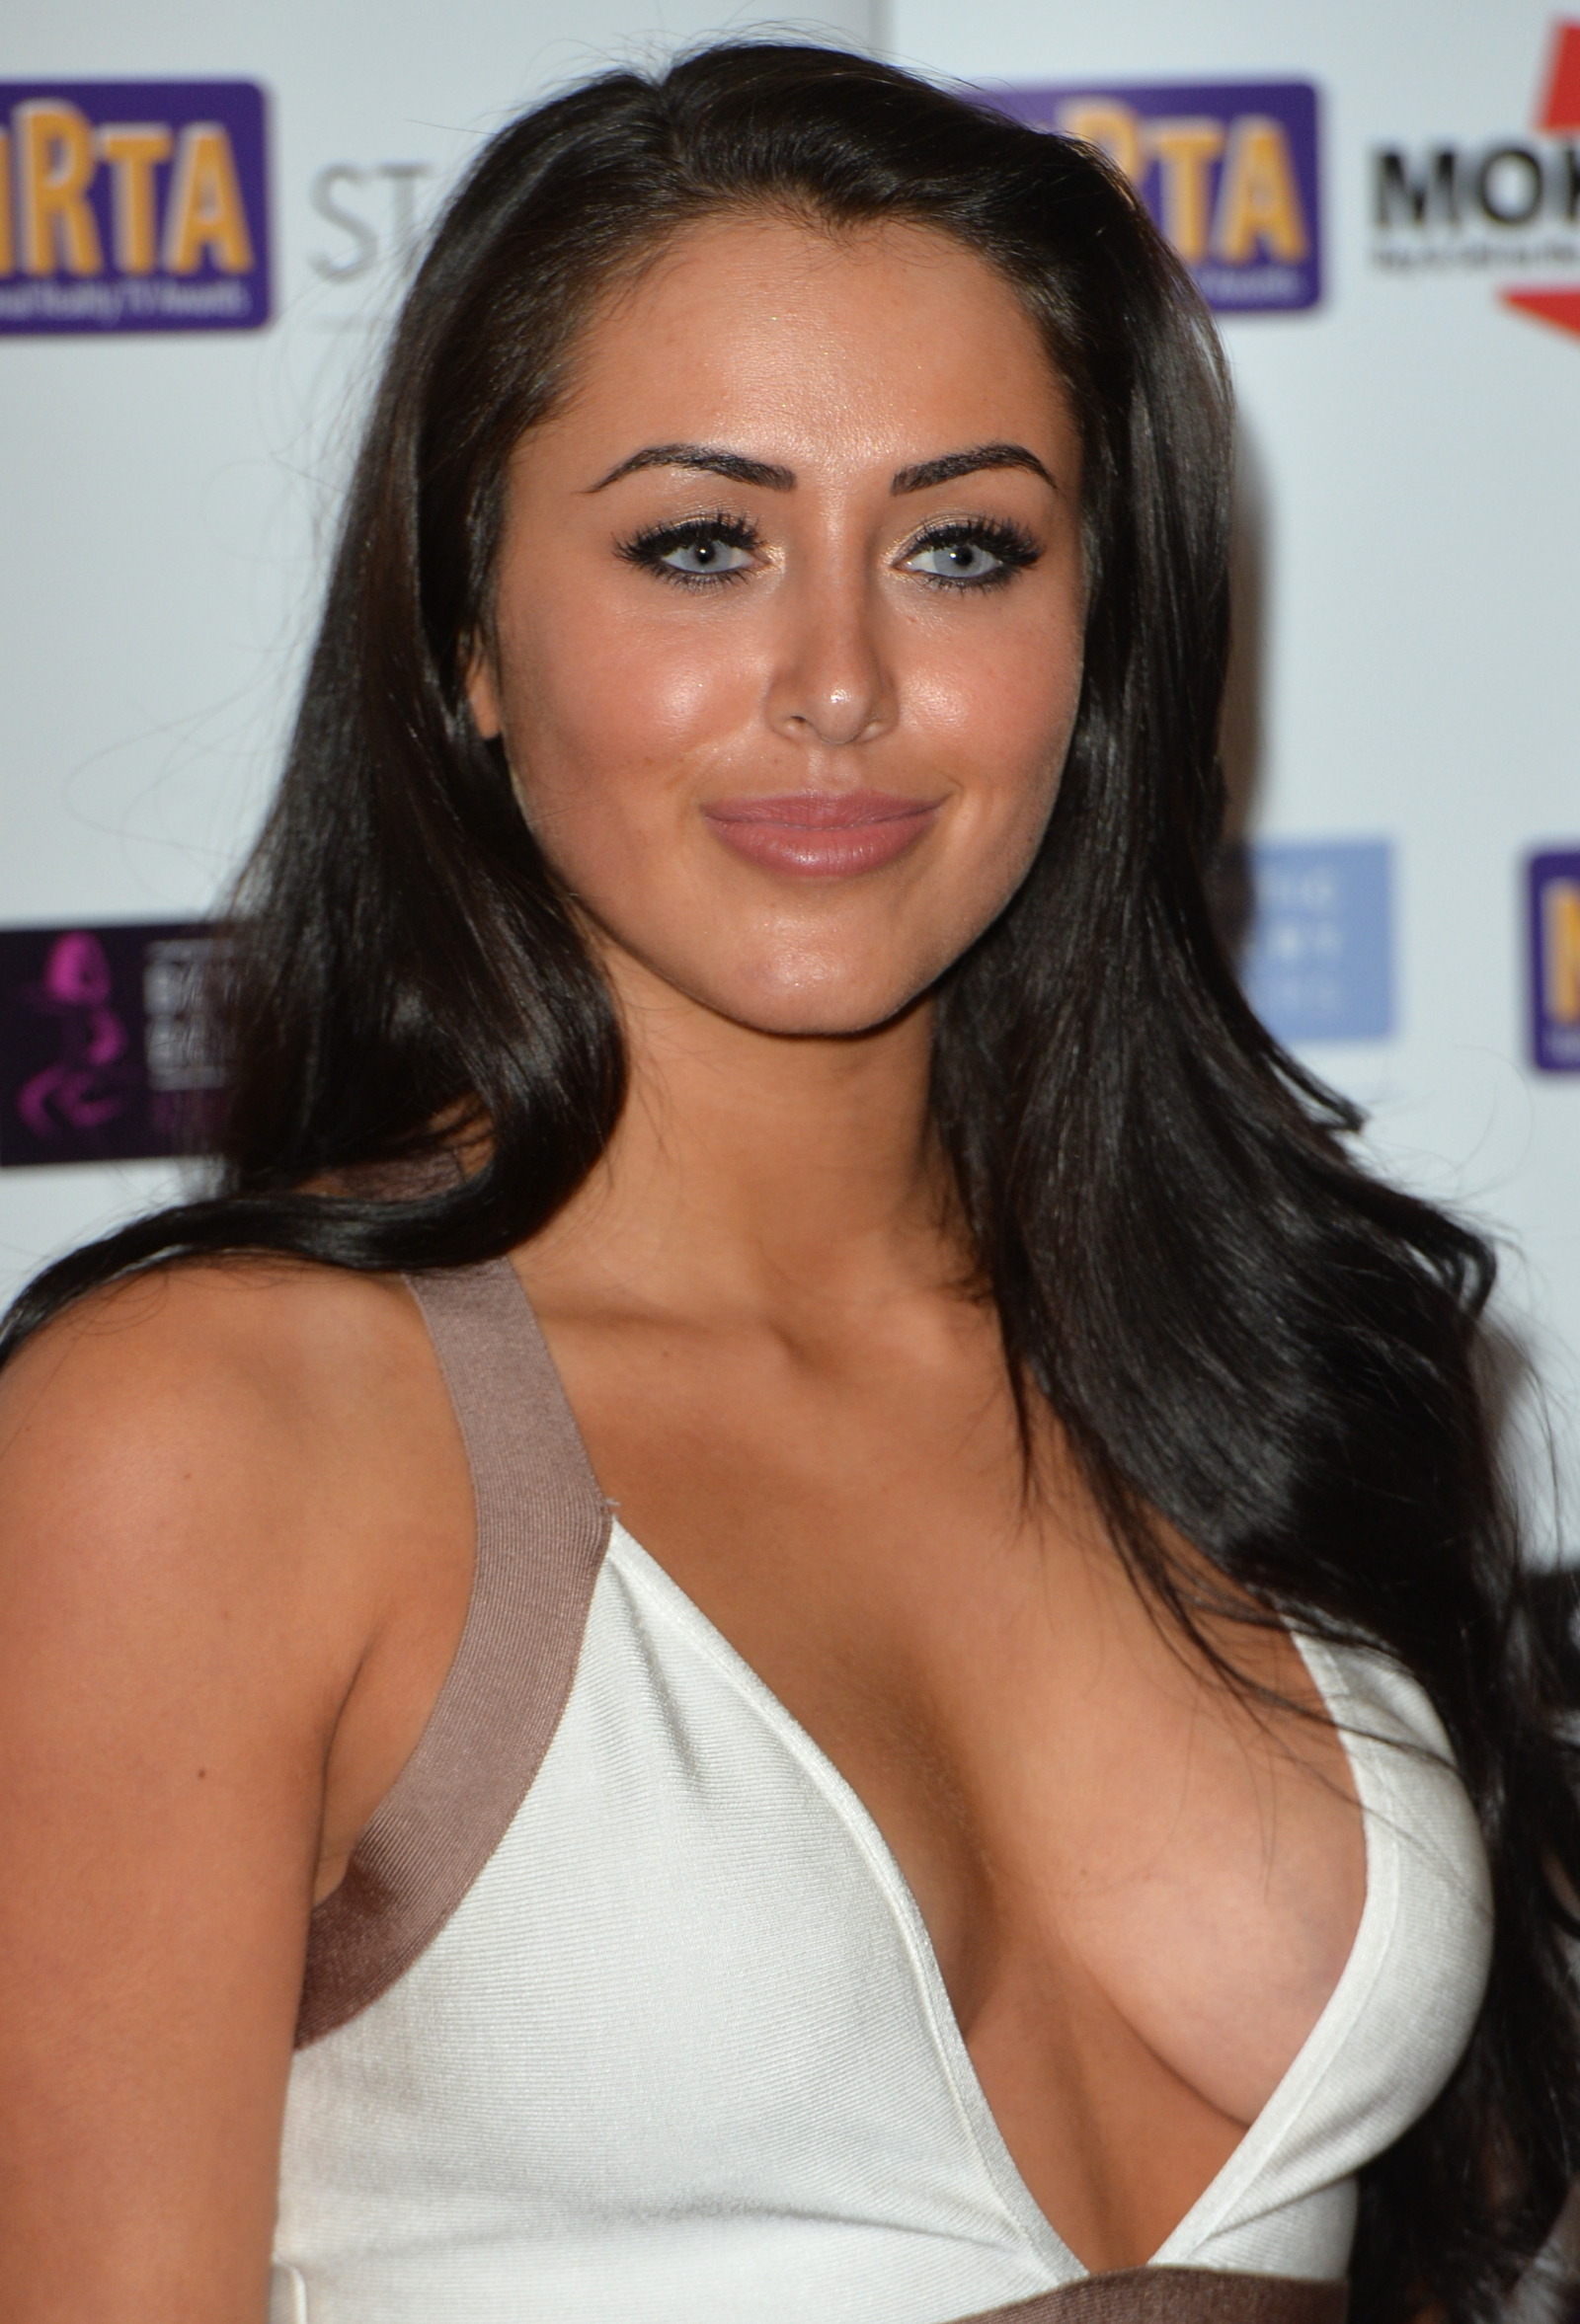 Pics Marnie Simpson naked (86 images), Boobs